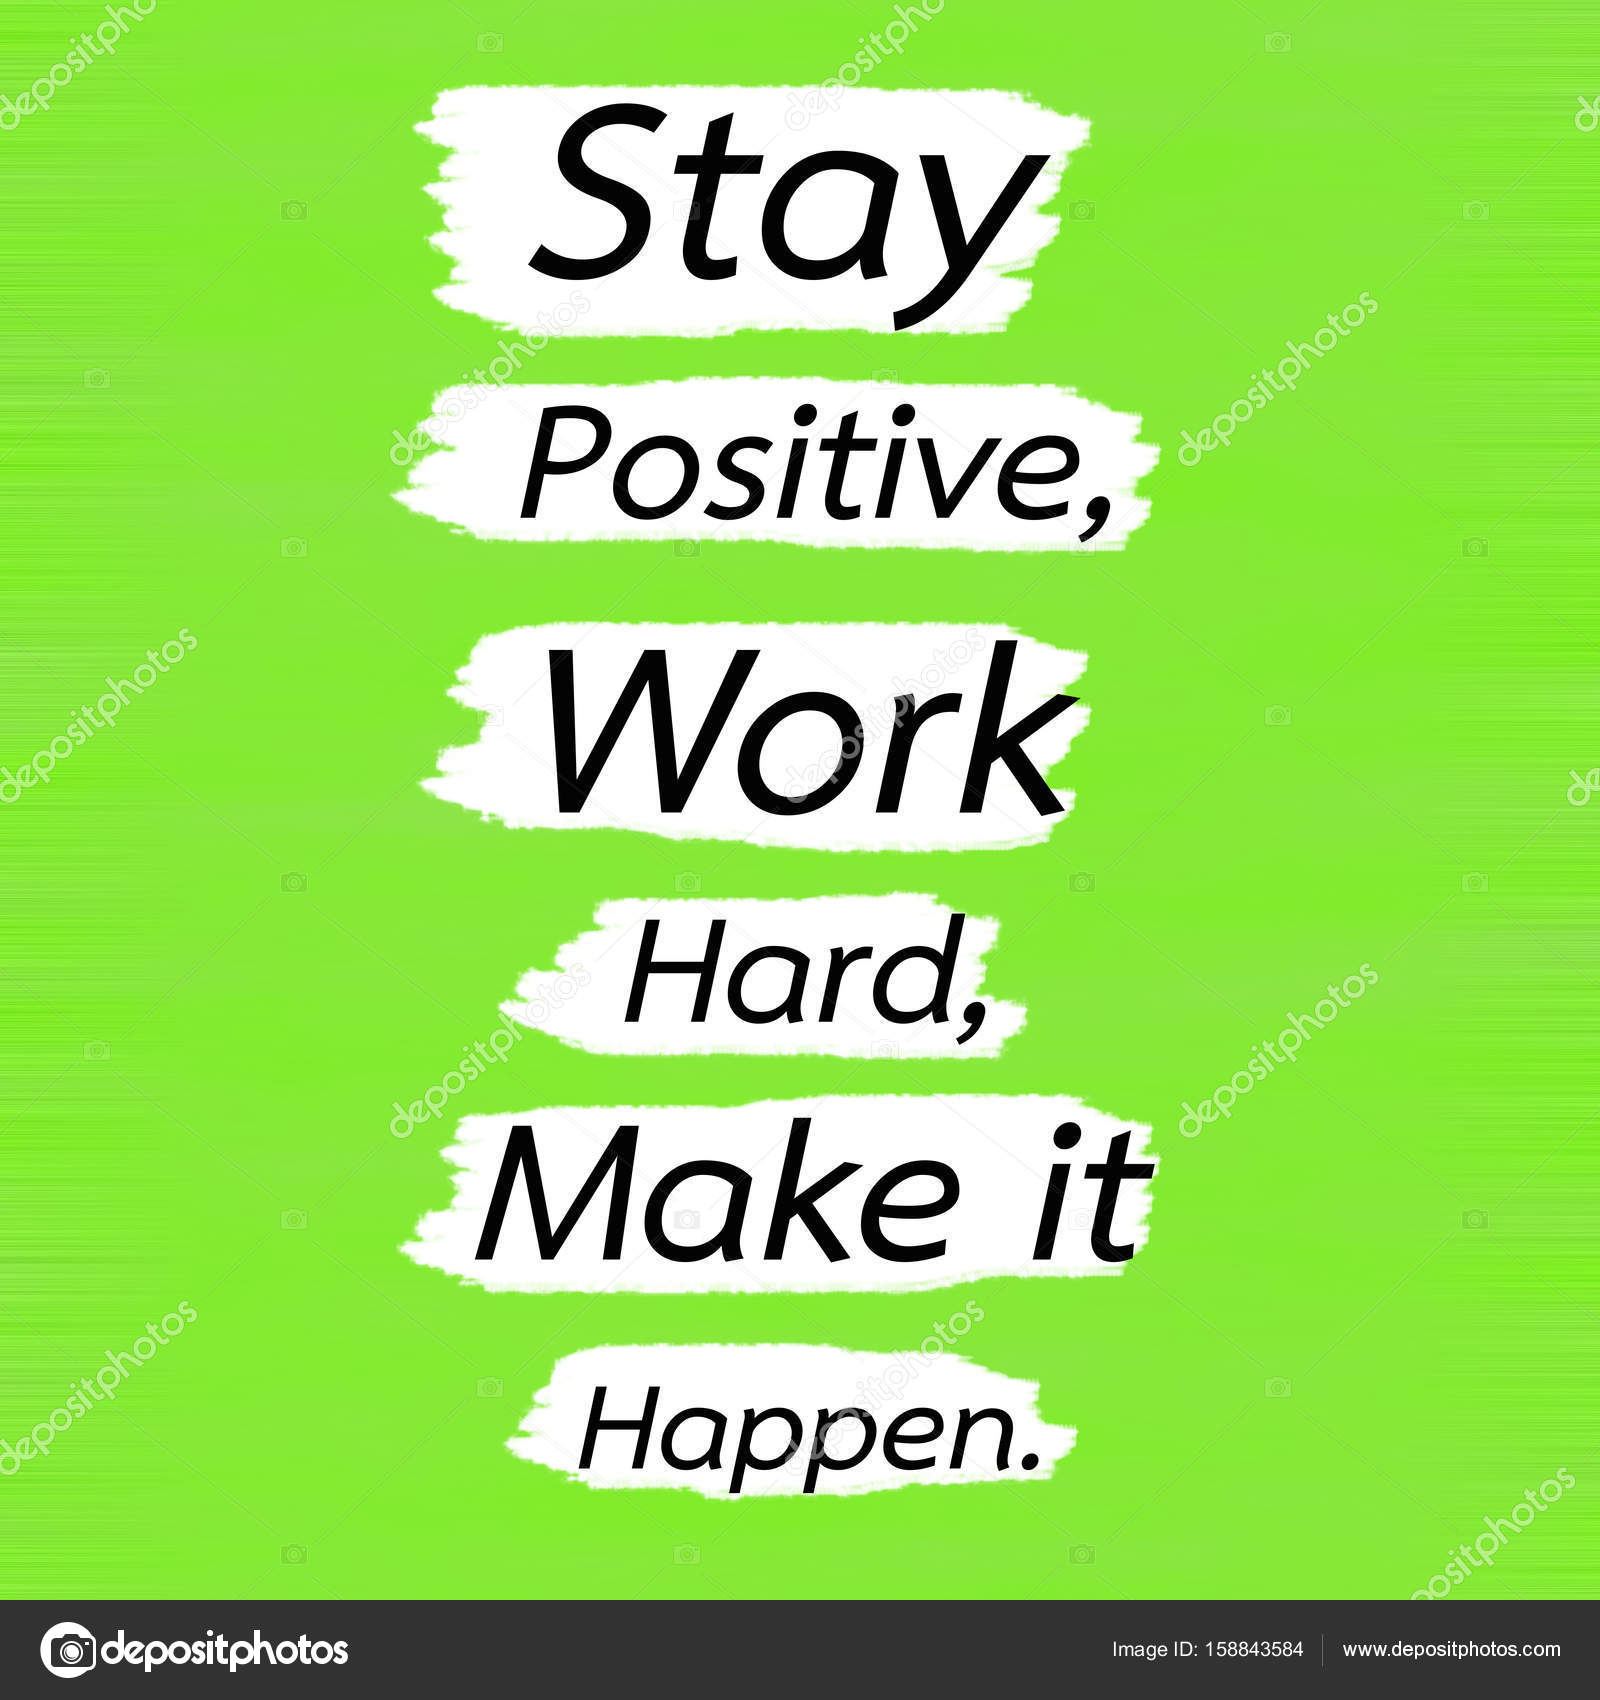 Stay Positive Work Hard Make It Happen Wallpaper Stay